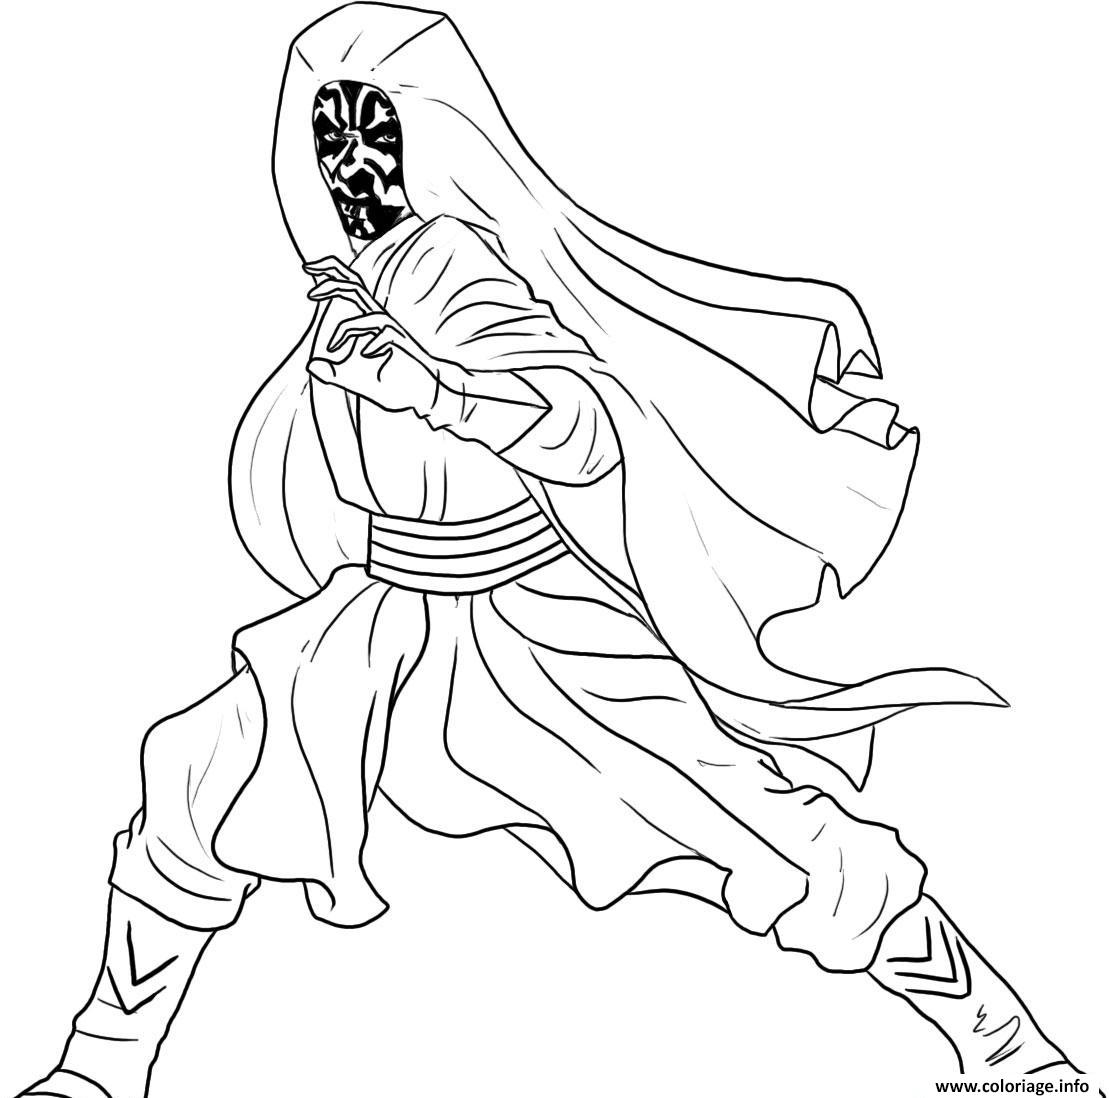 darth maul coloring pages - HD1109×1098